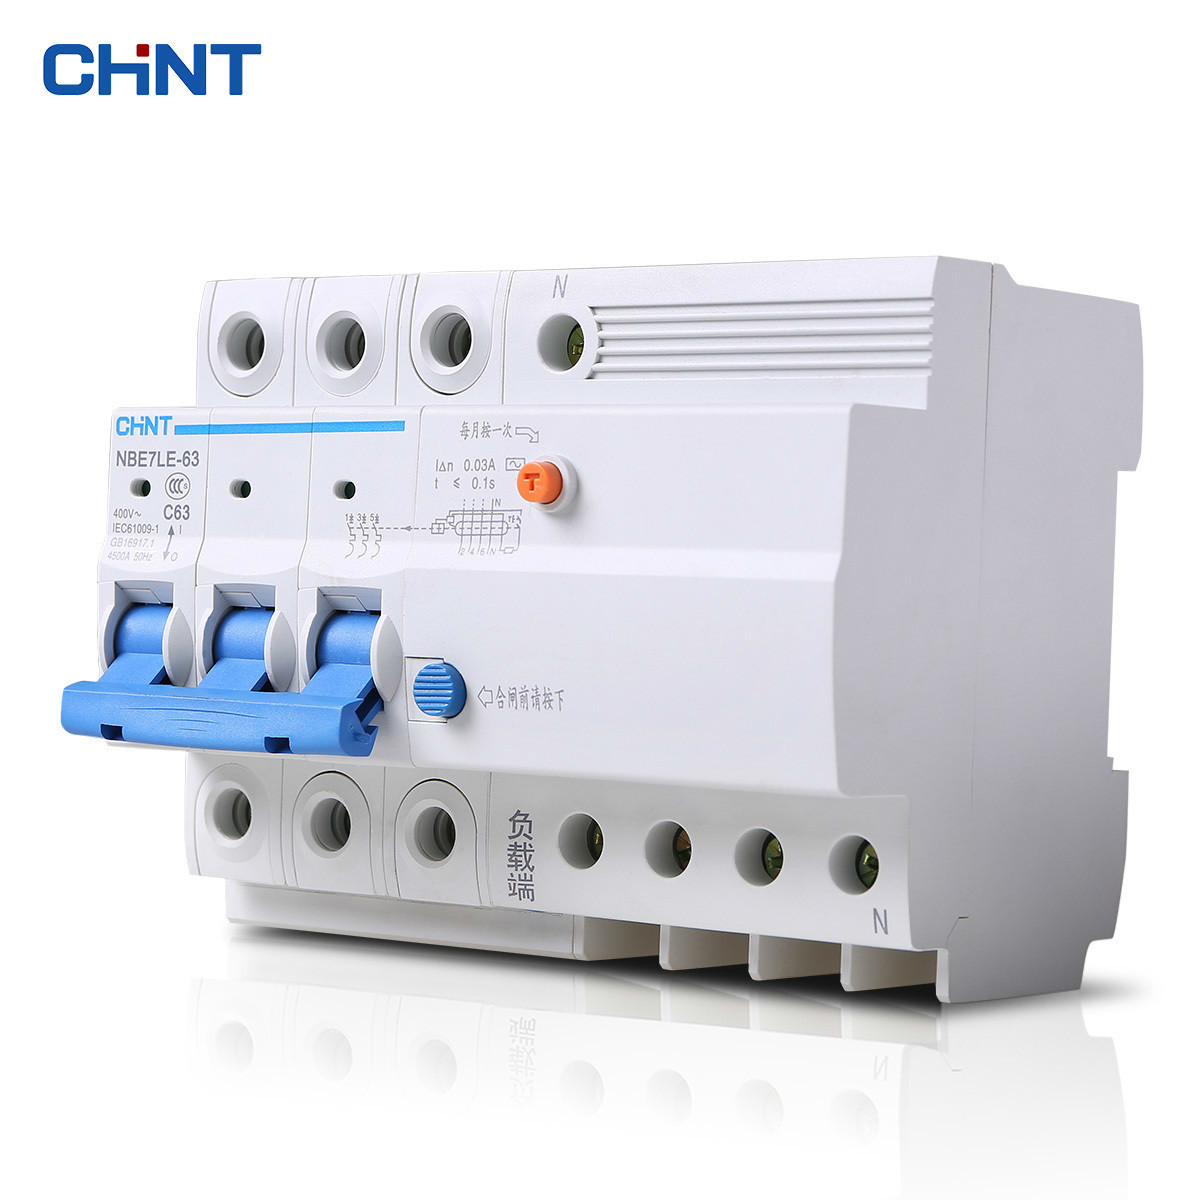 CHNT CHINT Leakage Protector NBE7LE 3P + N 16A 20A 25A 32A 40A 63A Small Circuit Breaker Air Switch подвесной светодиодный светильник horoz asfor черный 019 011 0085